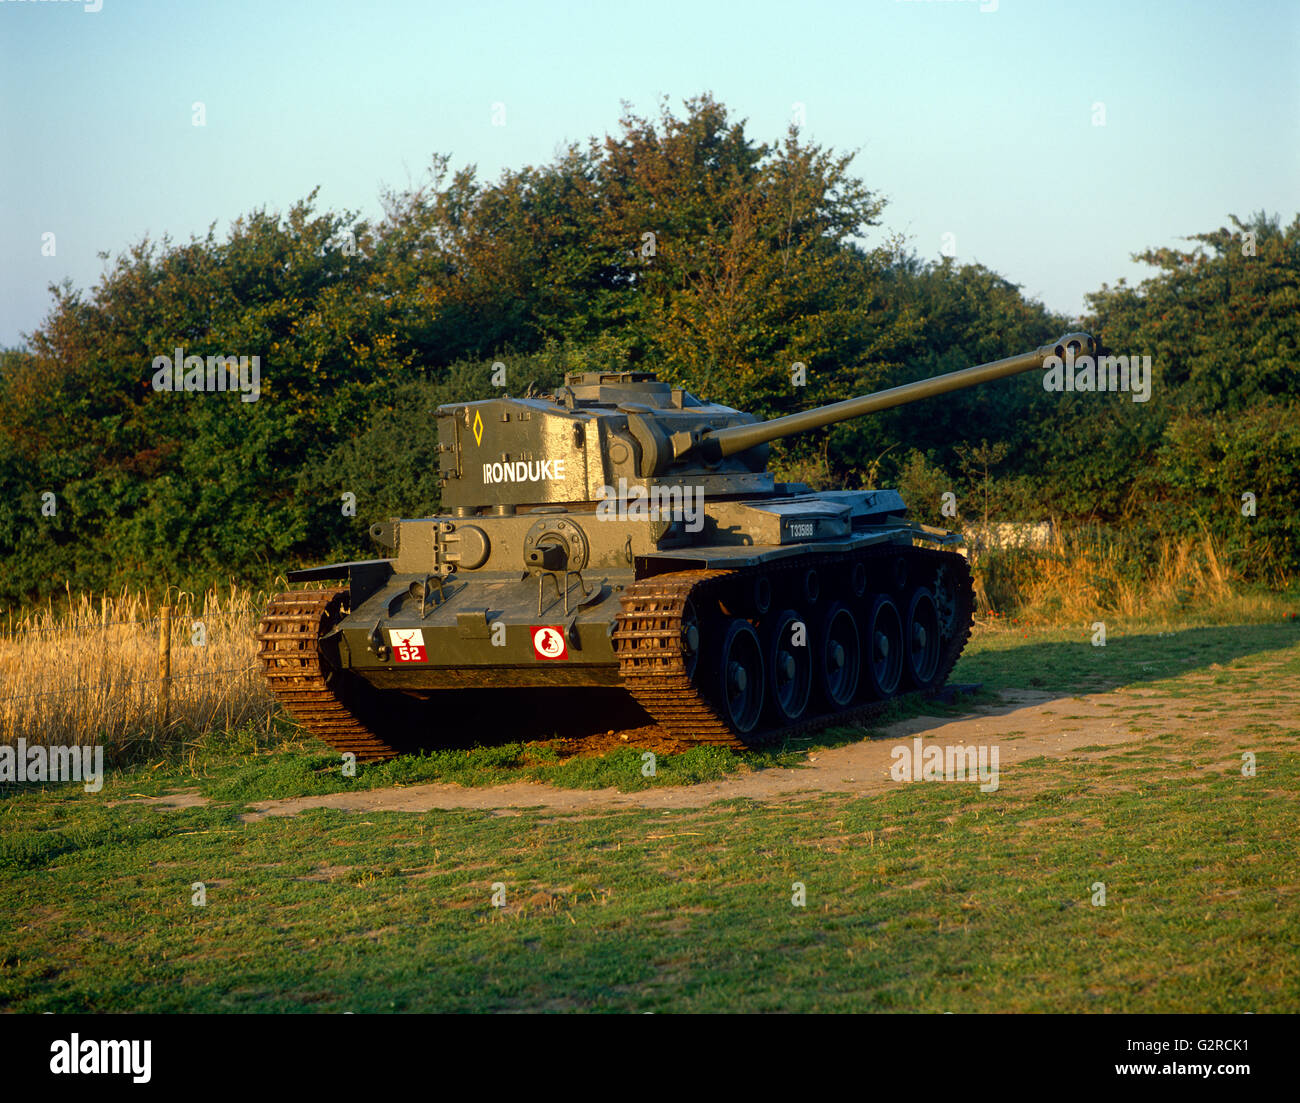 A British army tank - Stock Image